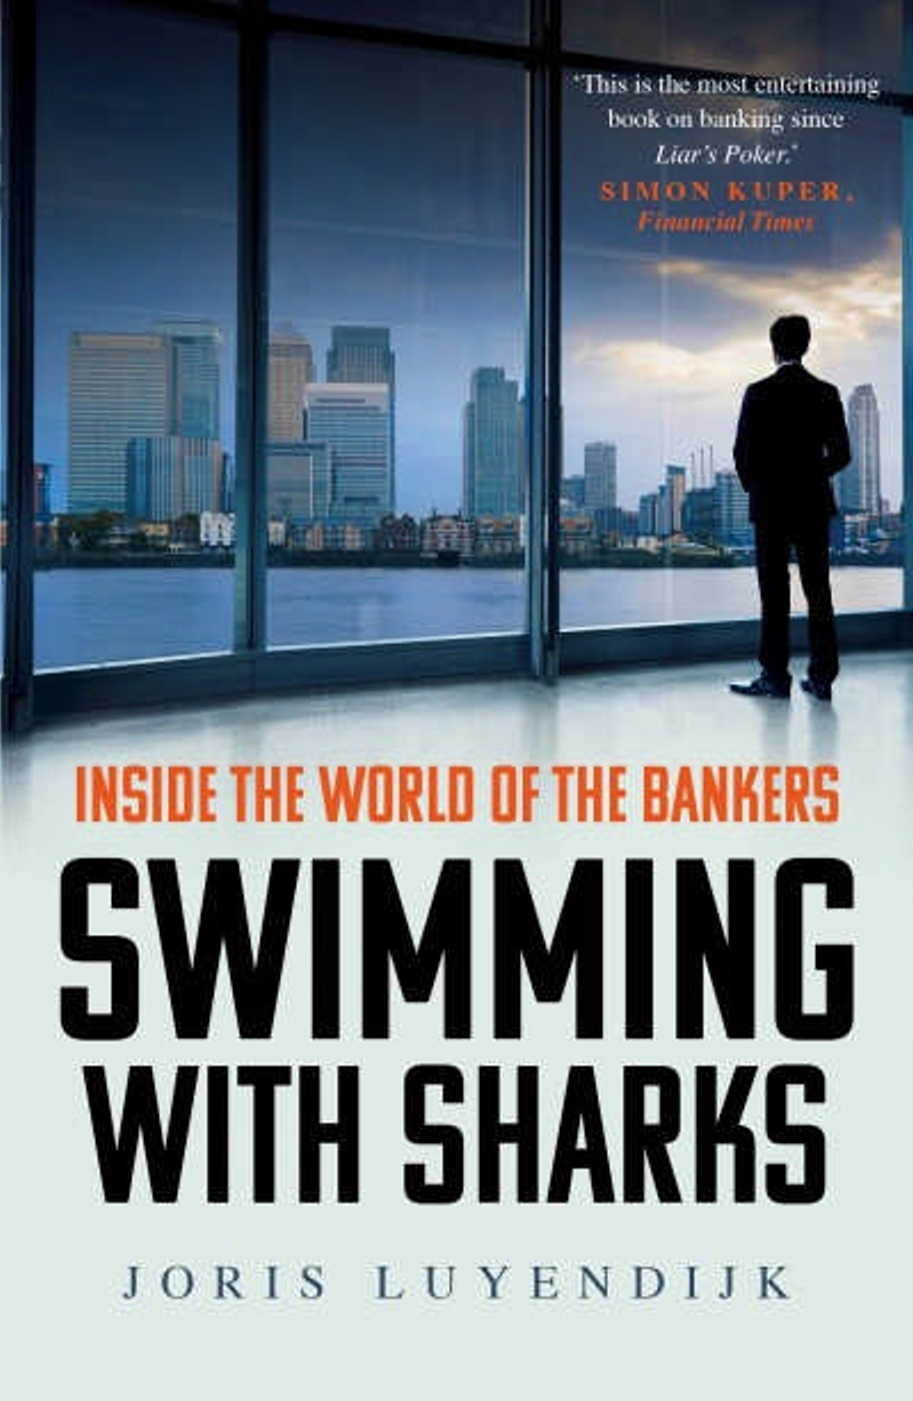 Swimming with Sharks: Inside the World of the